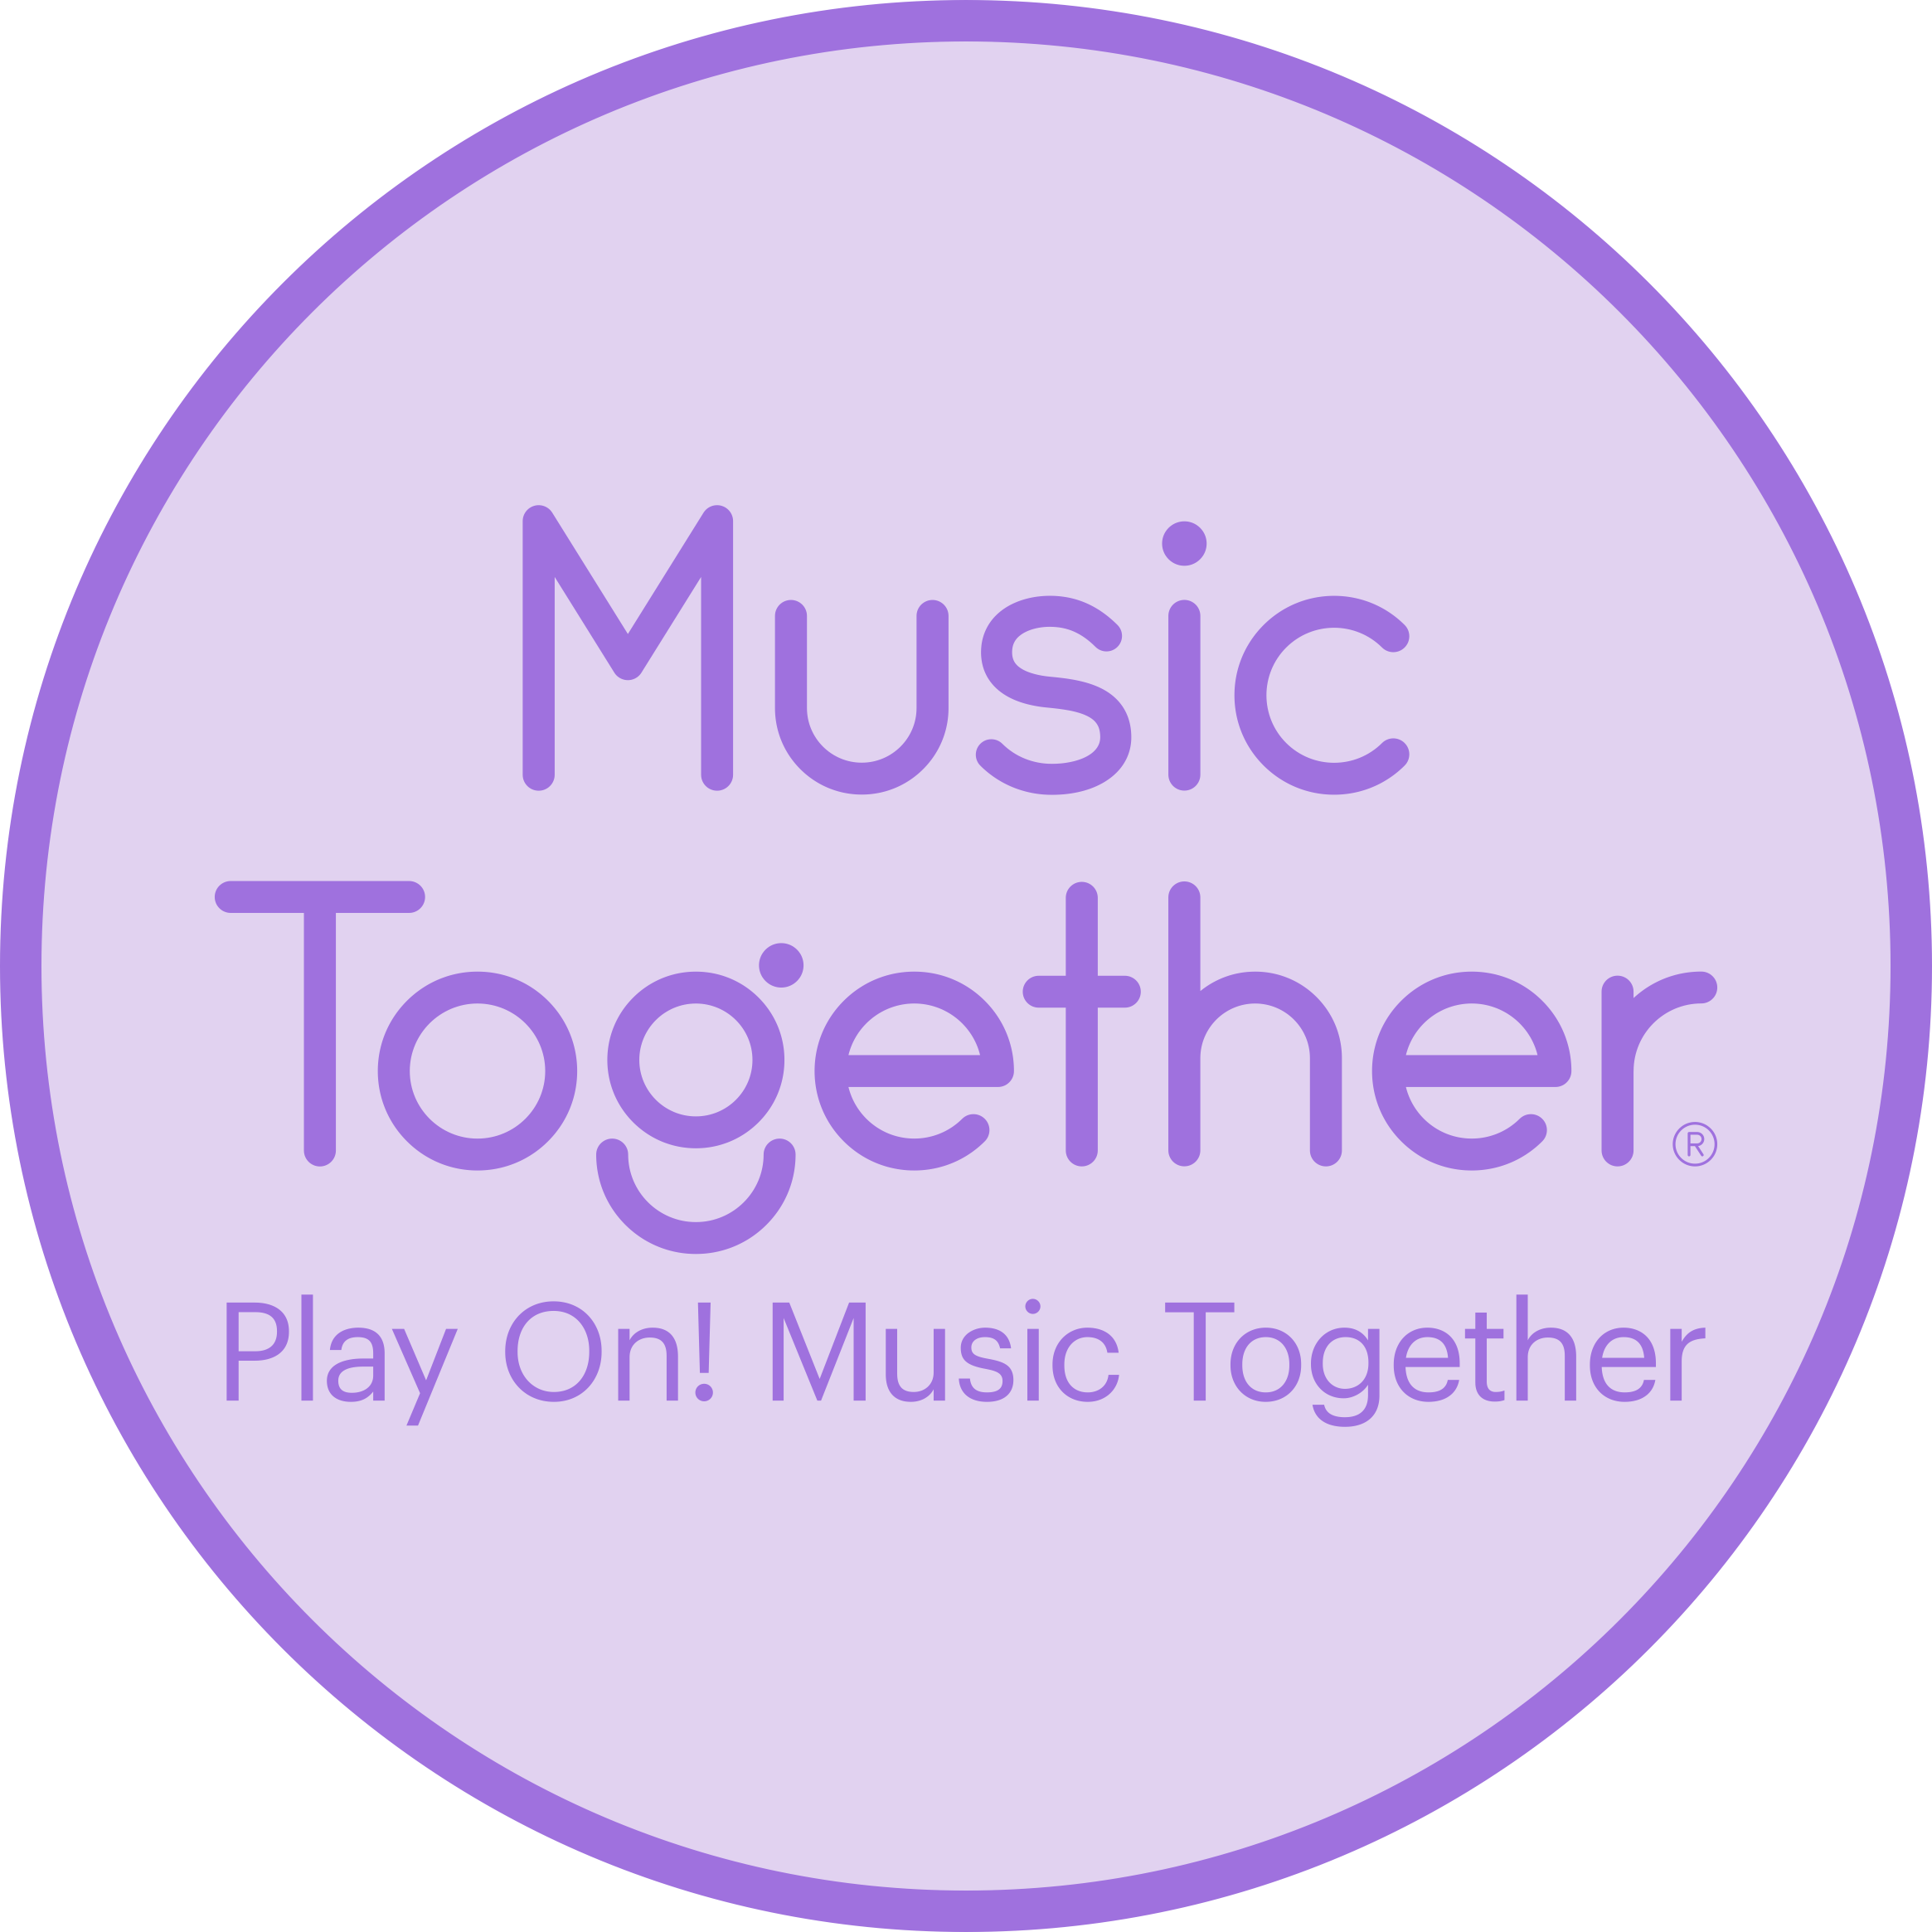 http://www.playon-musictogether.ro/index.html